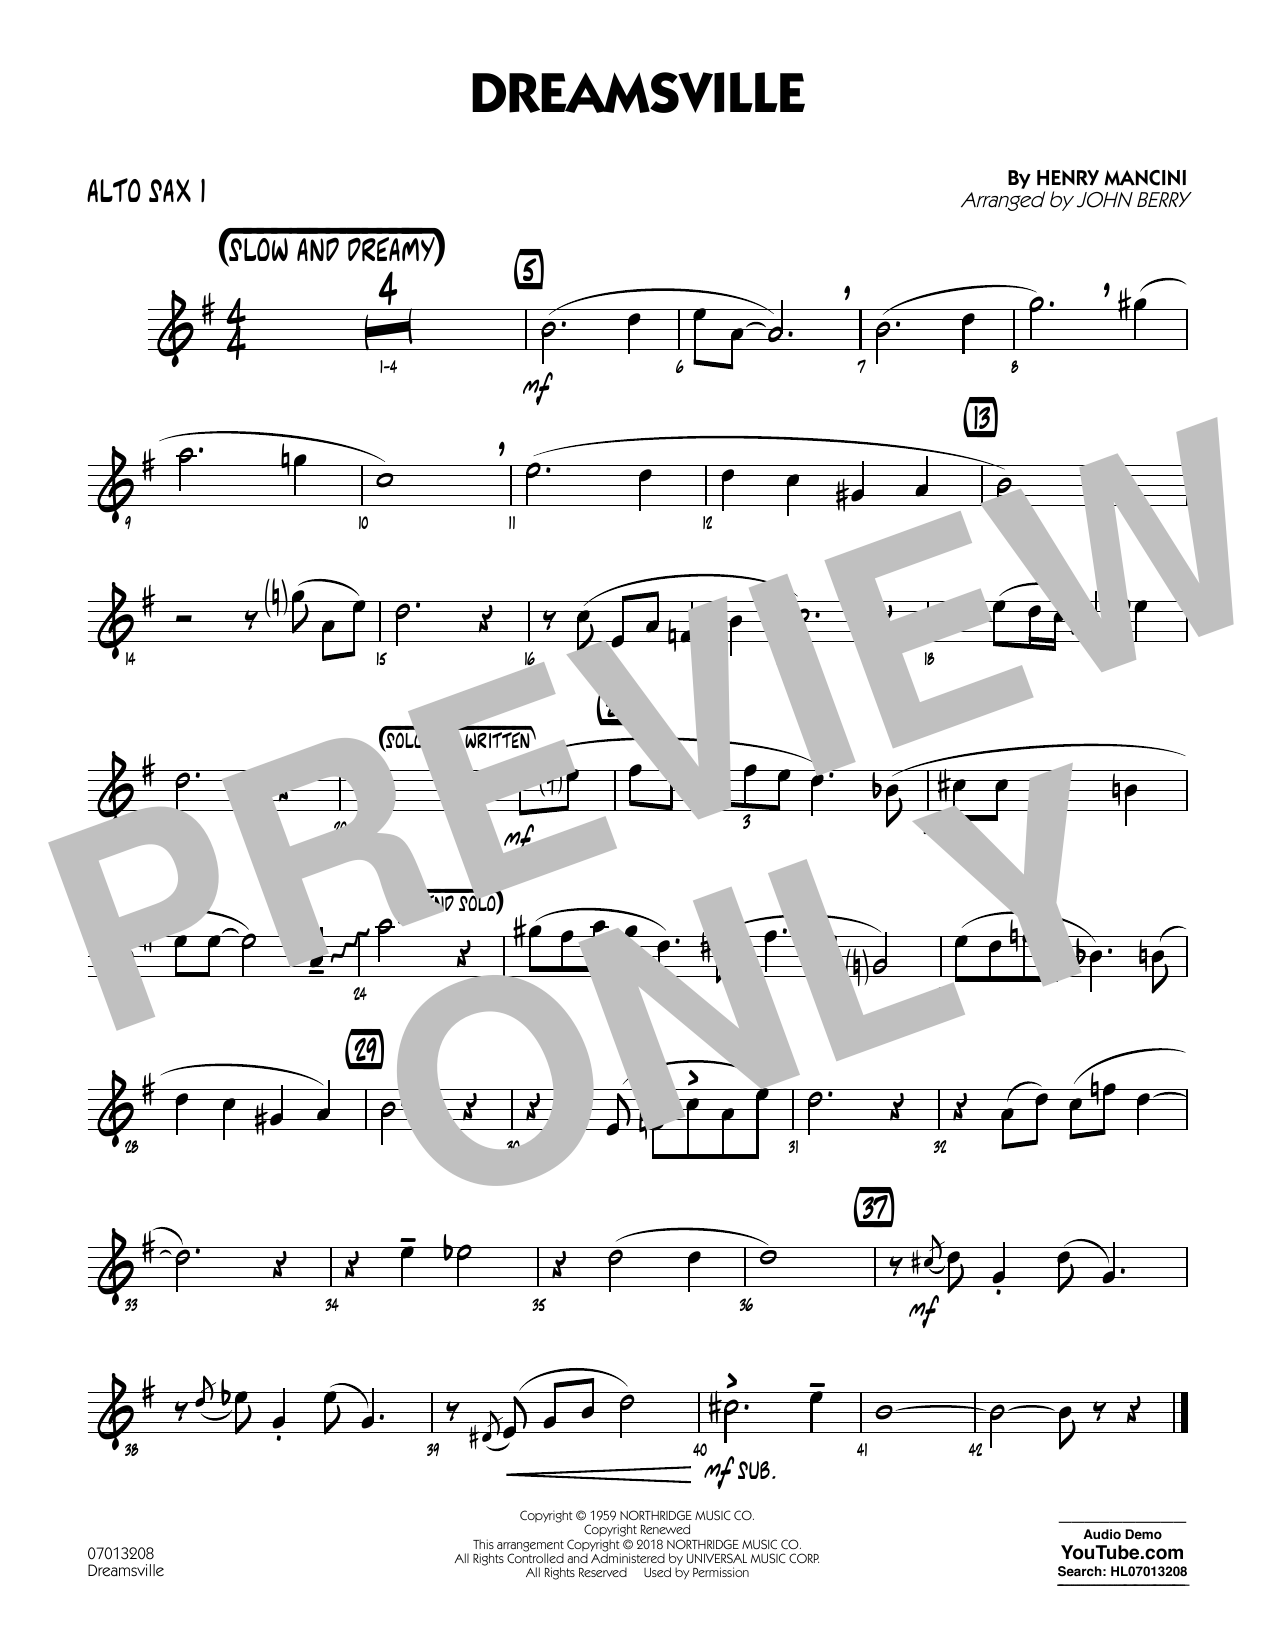 John Berry Dreamsville - Alto Sax 1 sheet music notes and chords. Download Printable PDF.